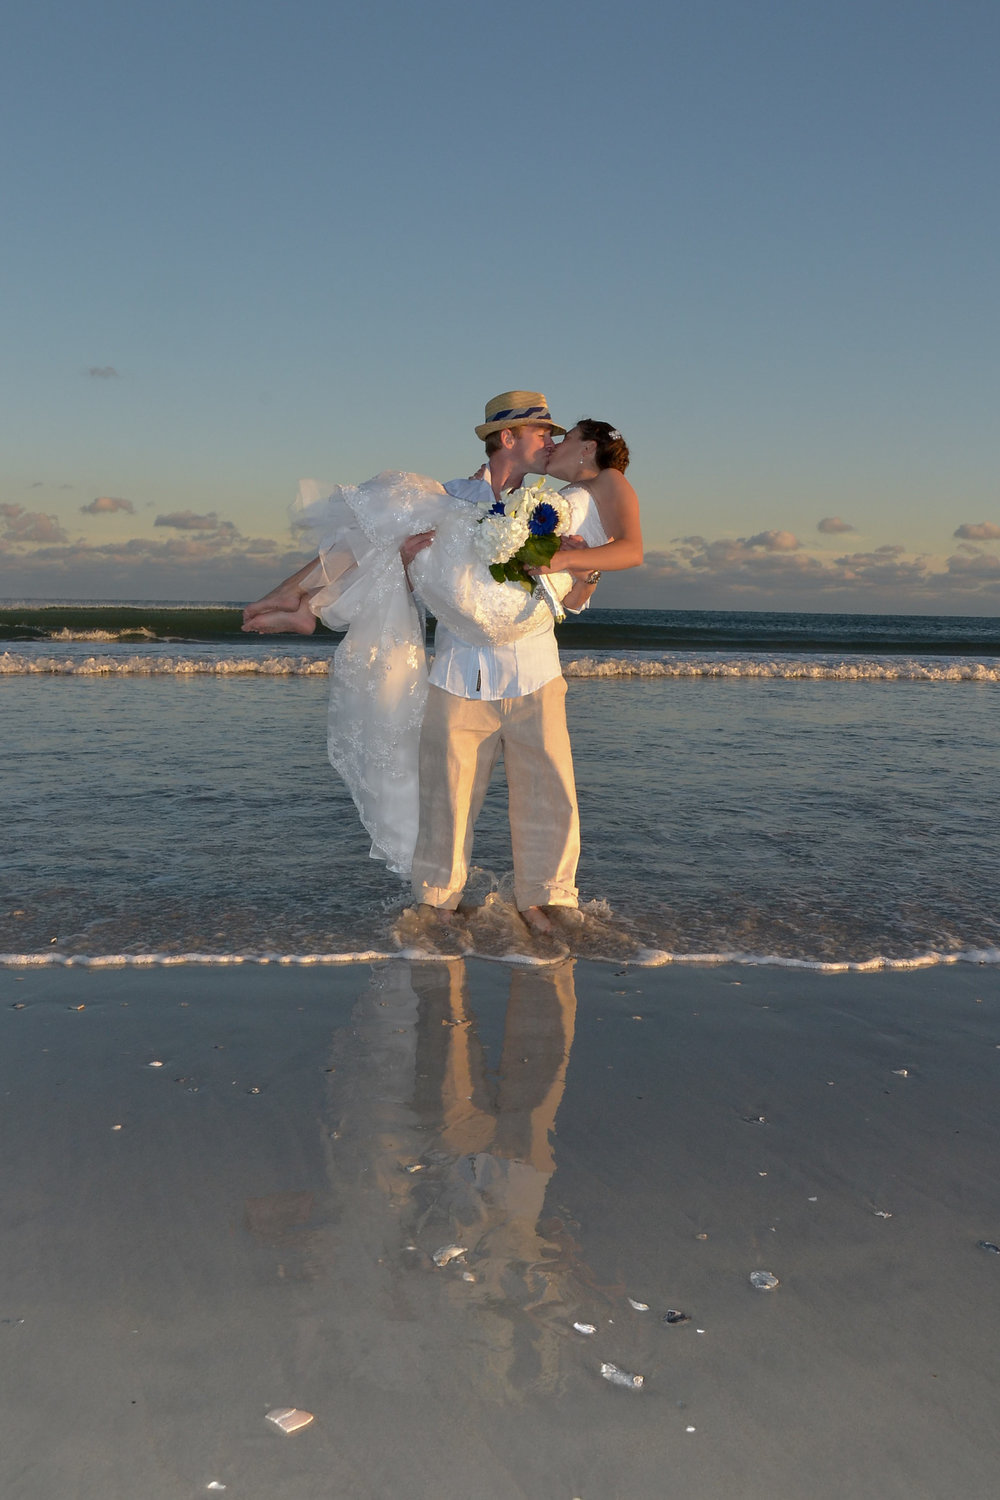 Newly married couple at beach.